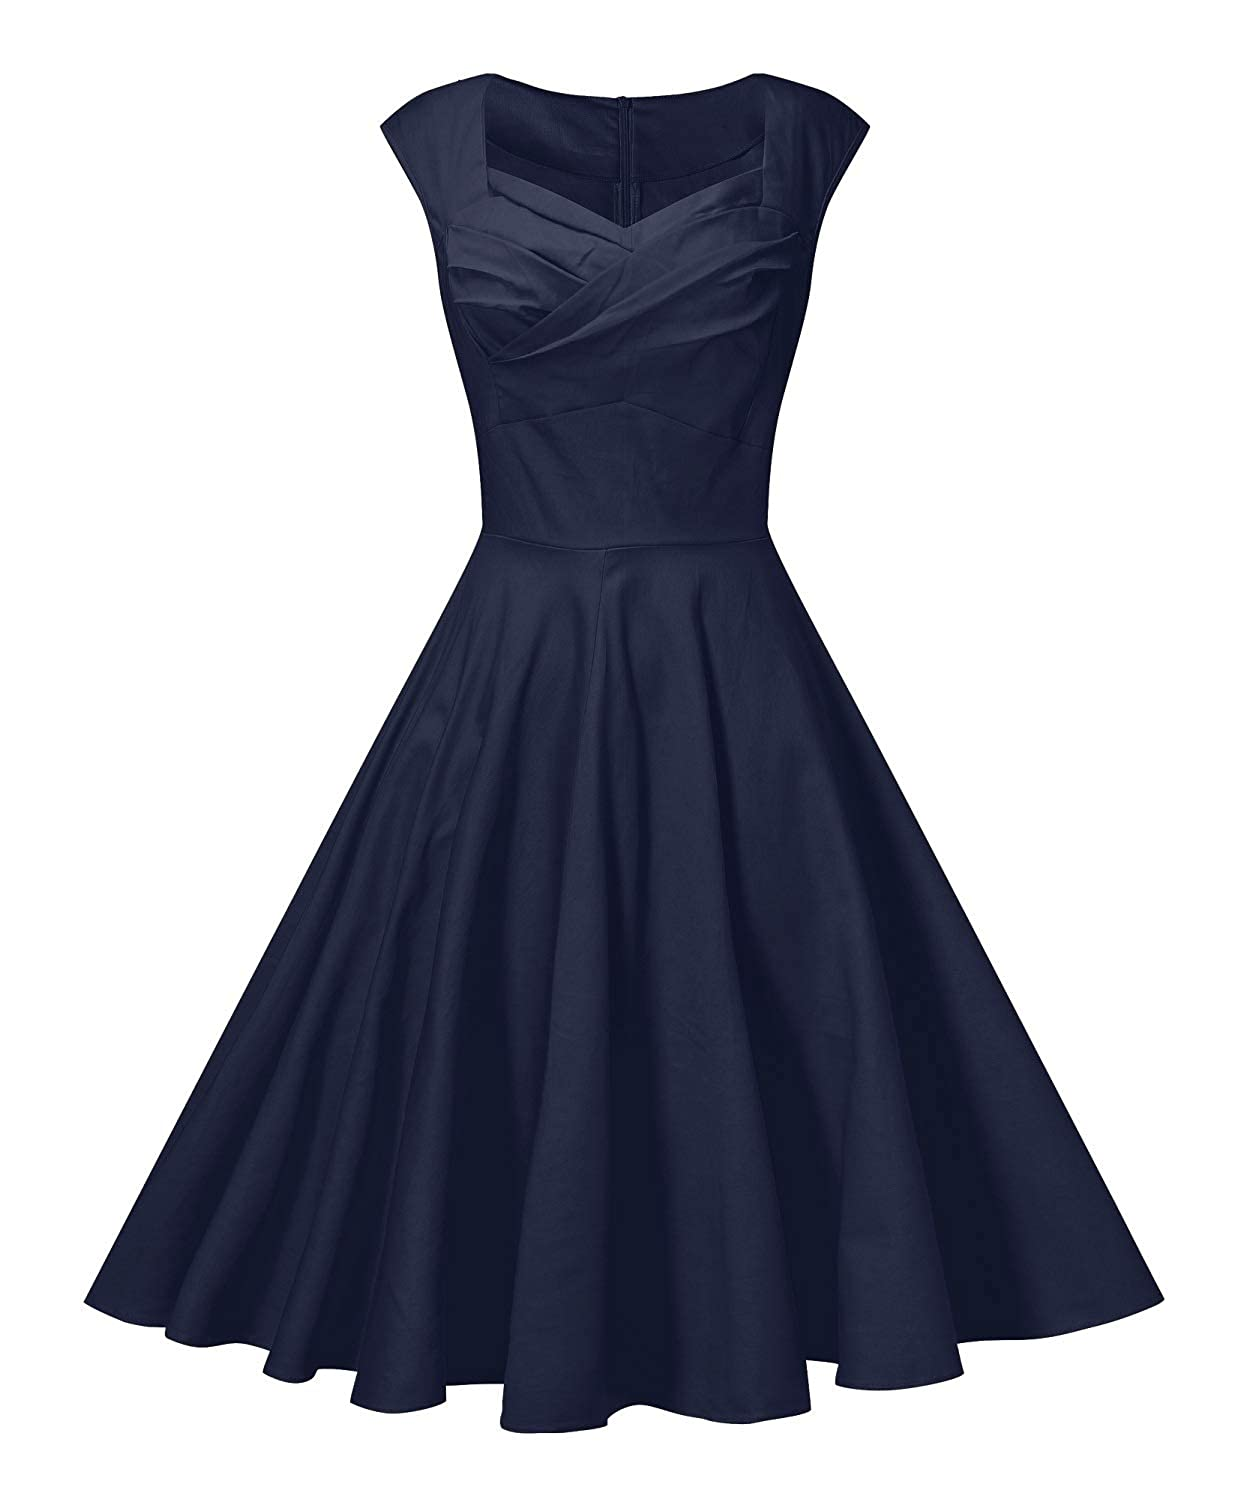 Deep bluee PENGEE Women's Retro 1950s Vintage Party Swing Dress Cap Sleeve Cocktail Dress